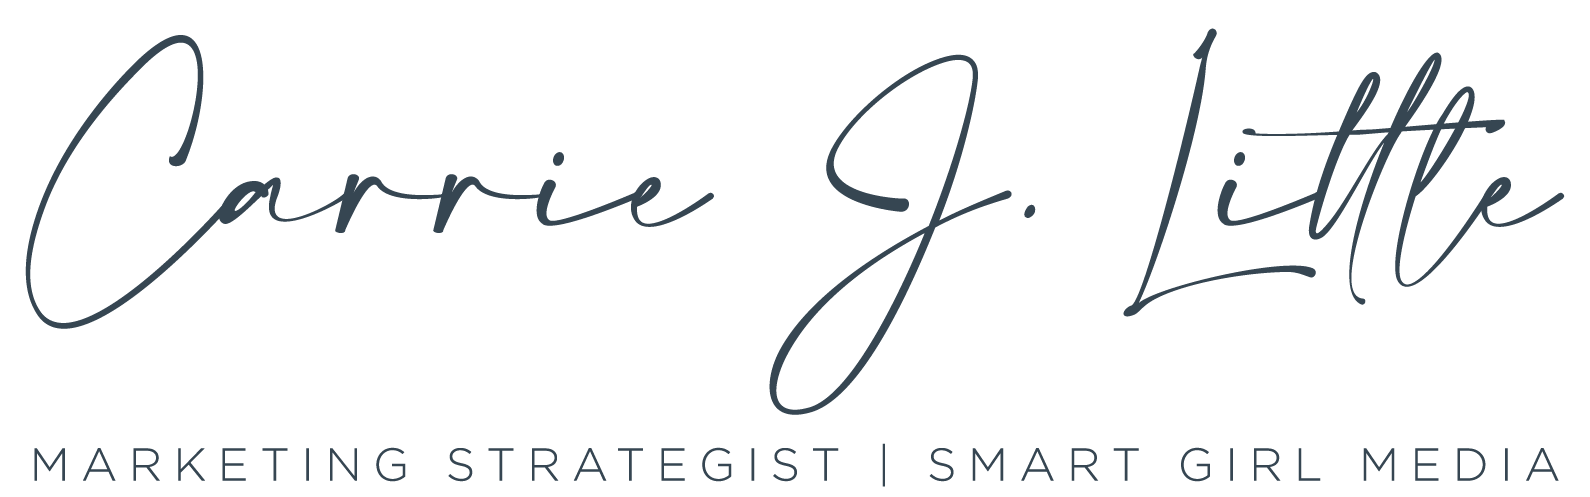 Carrie J. Little, BS, MS | Smart Girl Media